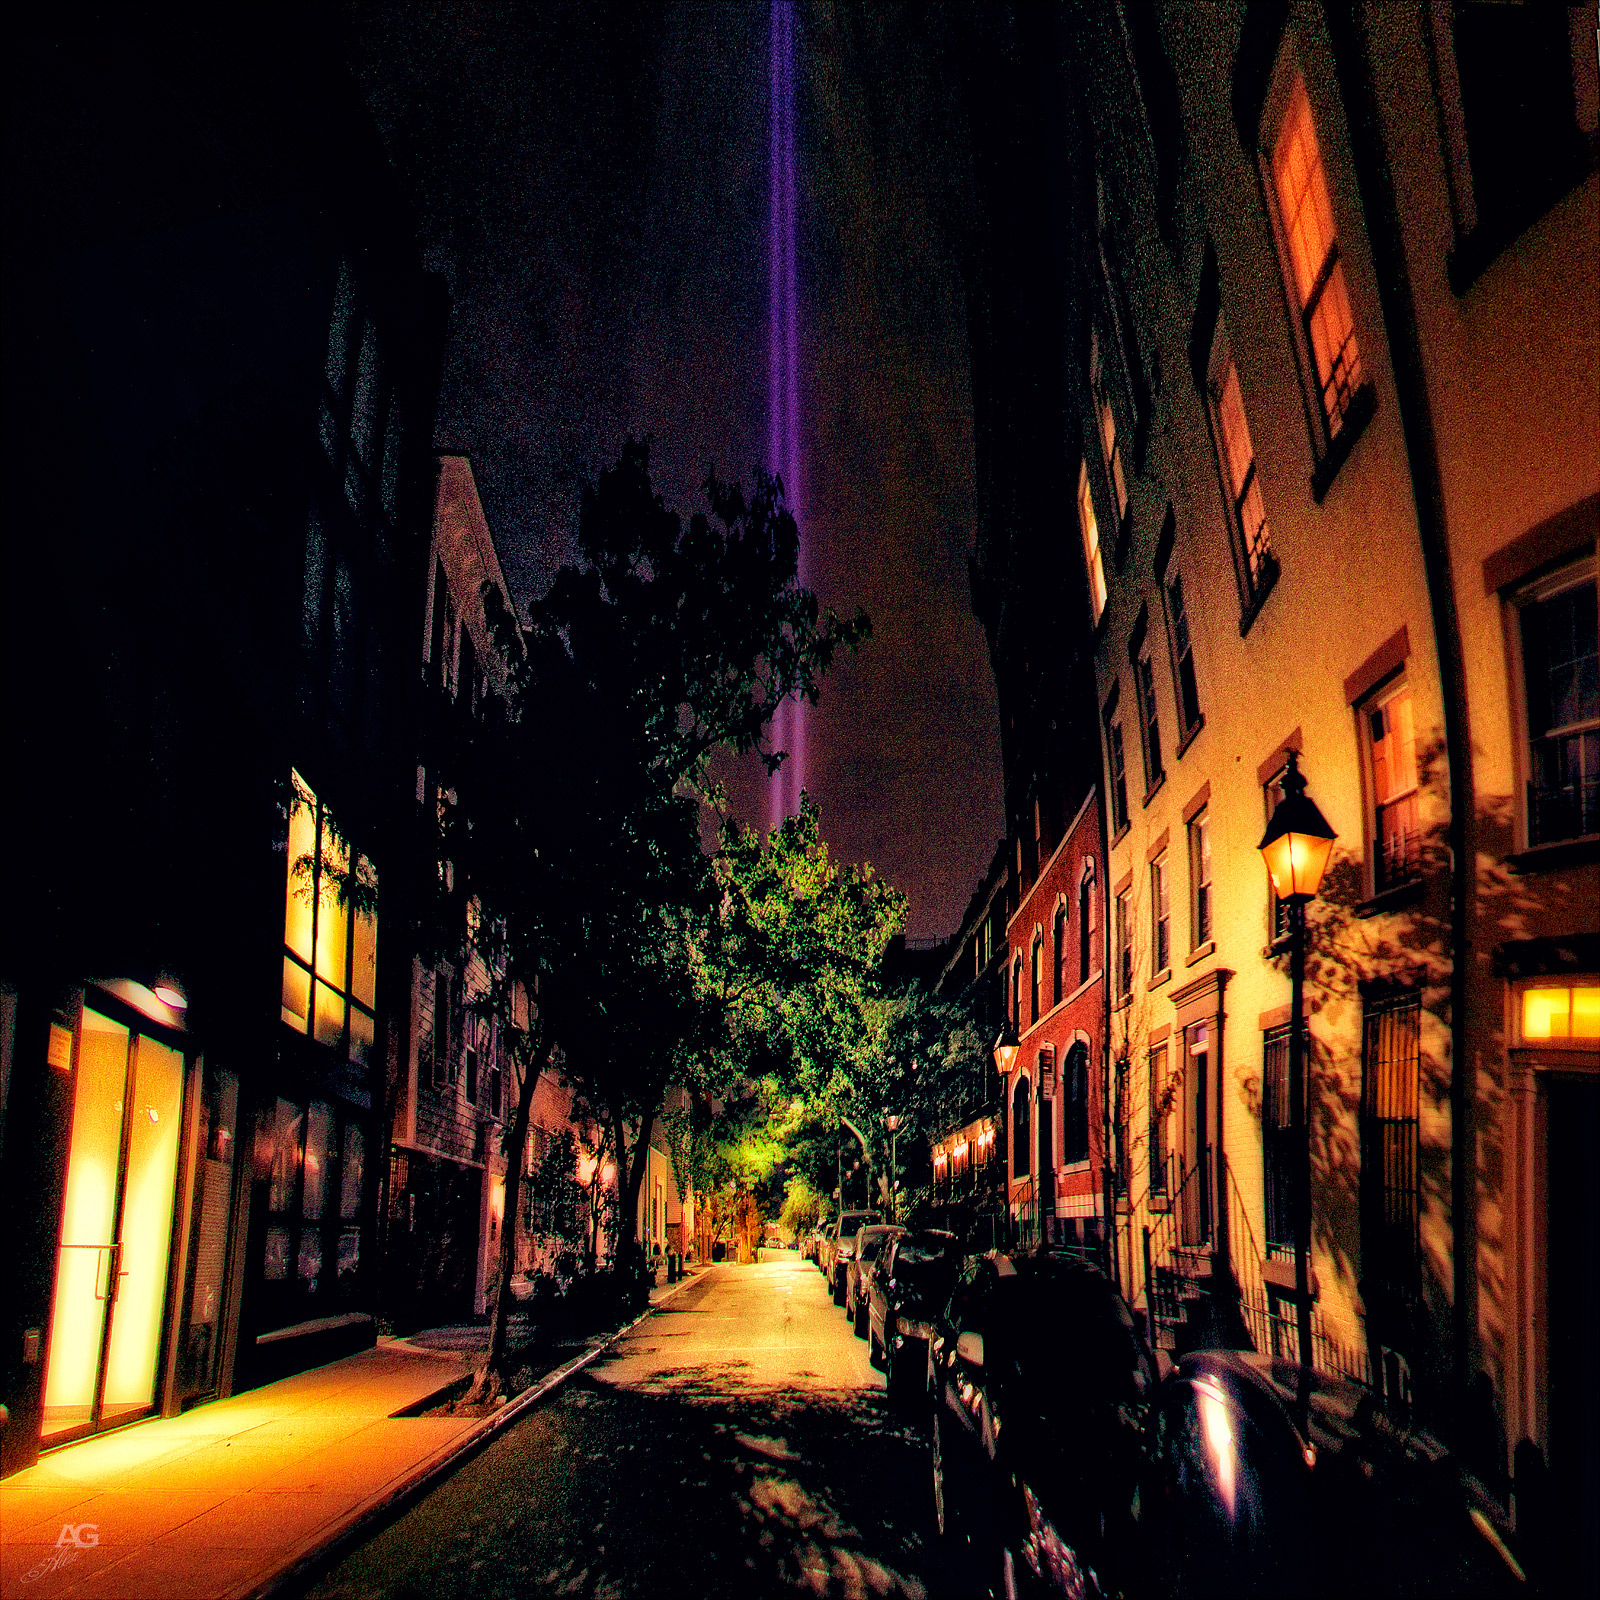 DarkStreetInDowntownBrooklynWith9-11Lights_warped_1600